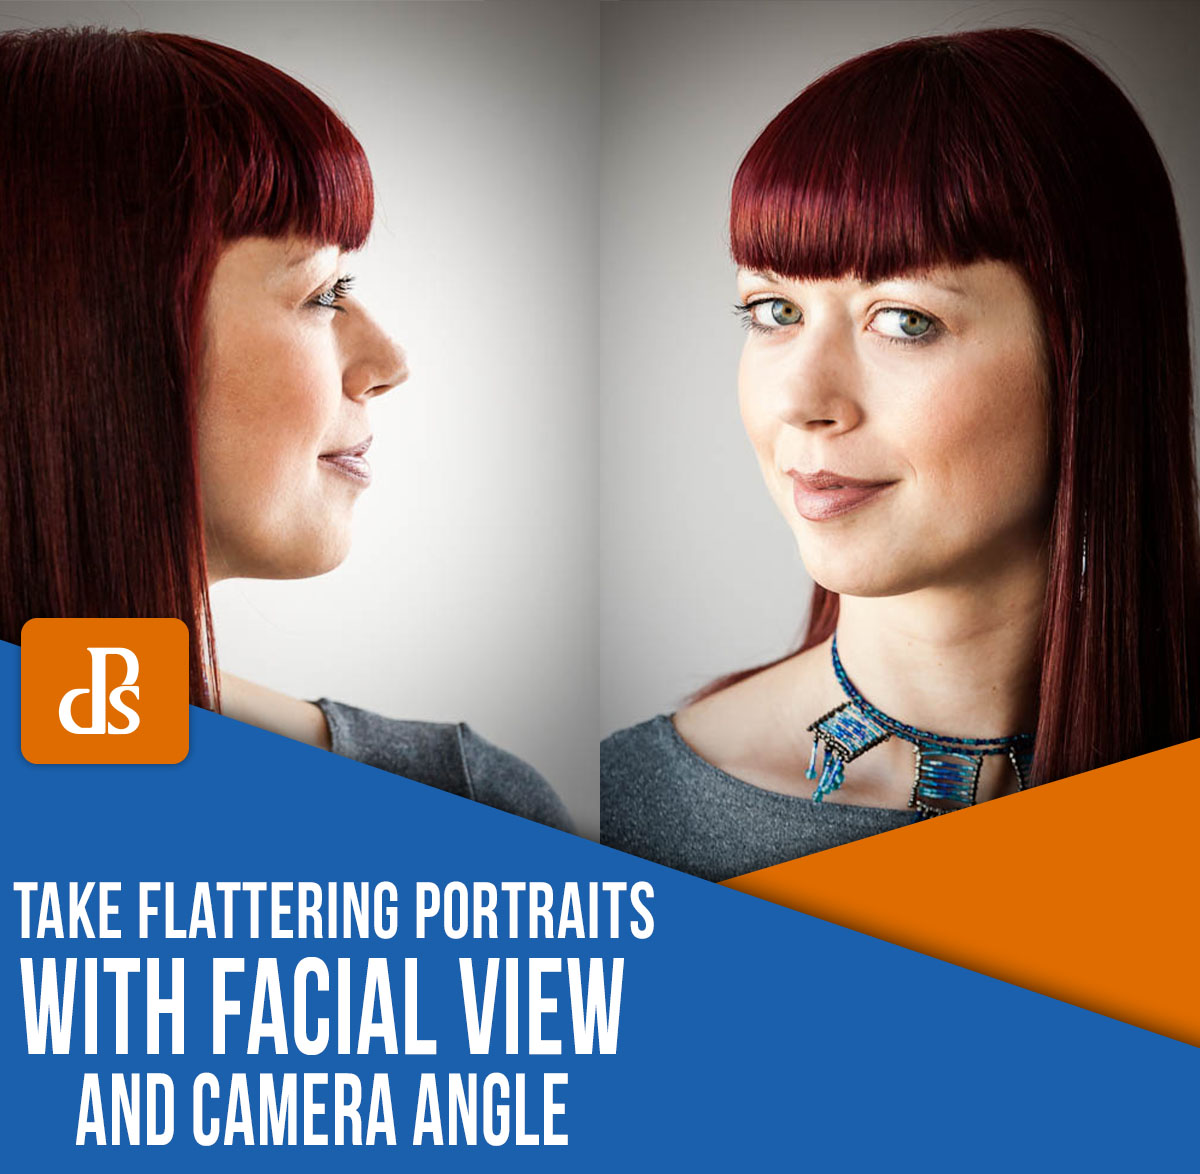 How to Use Facial View and Camera Angle to take Flattering Portraits